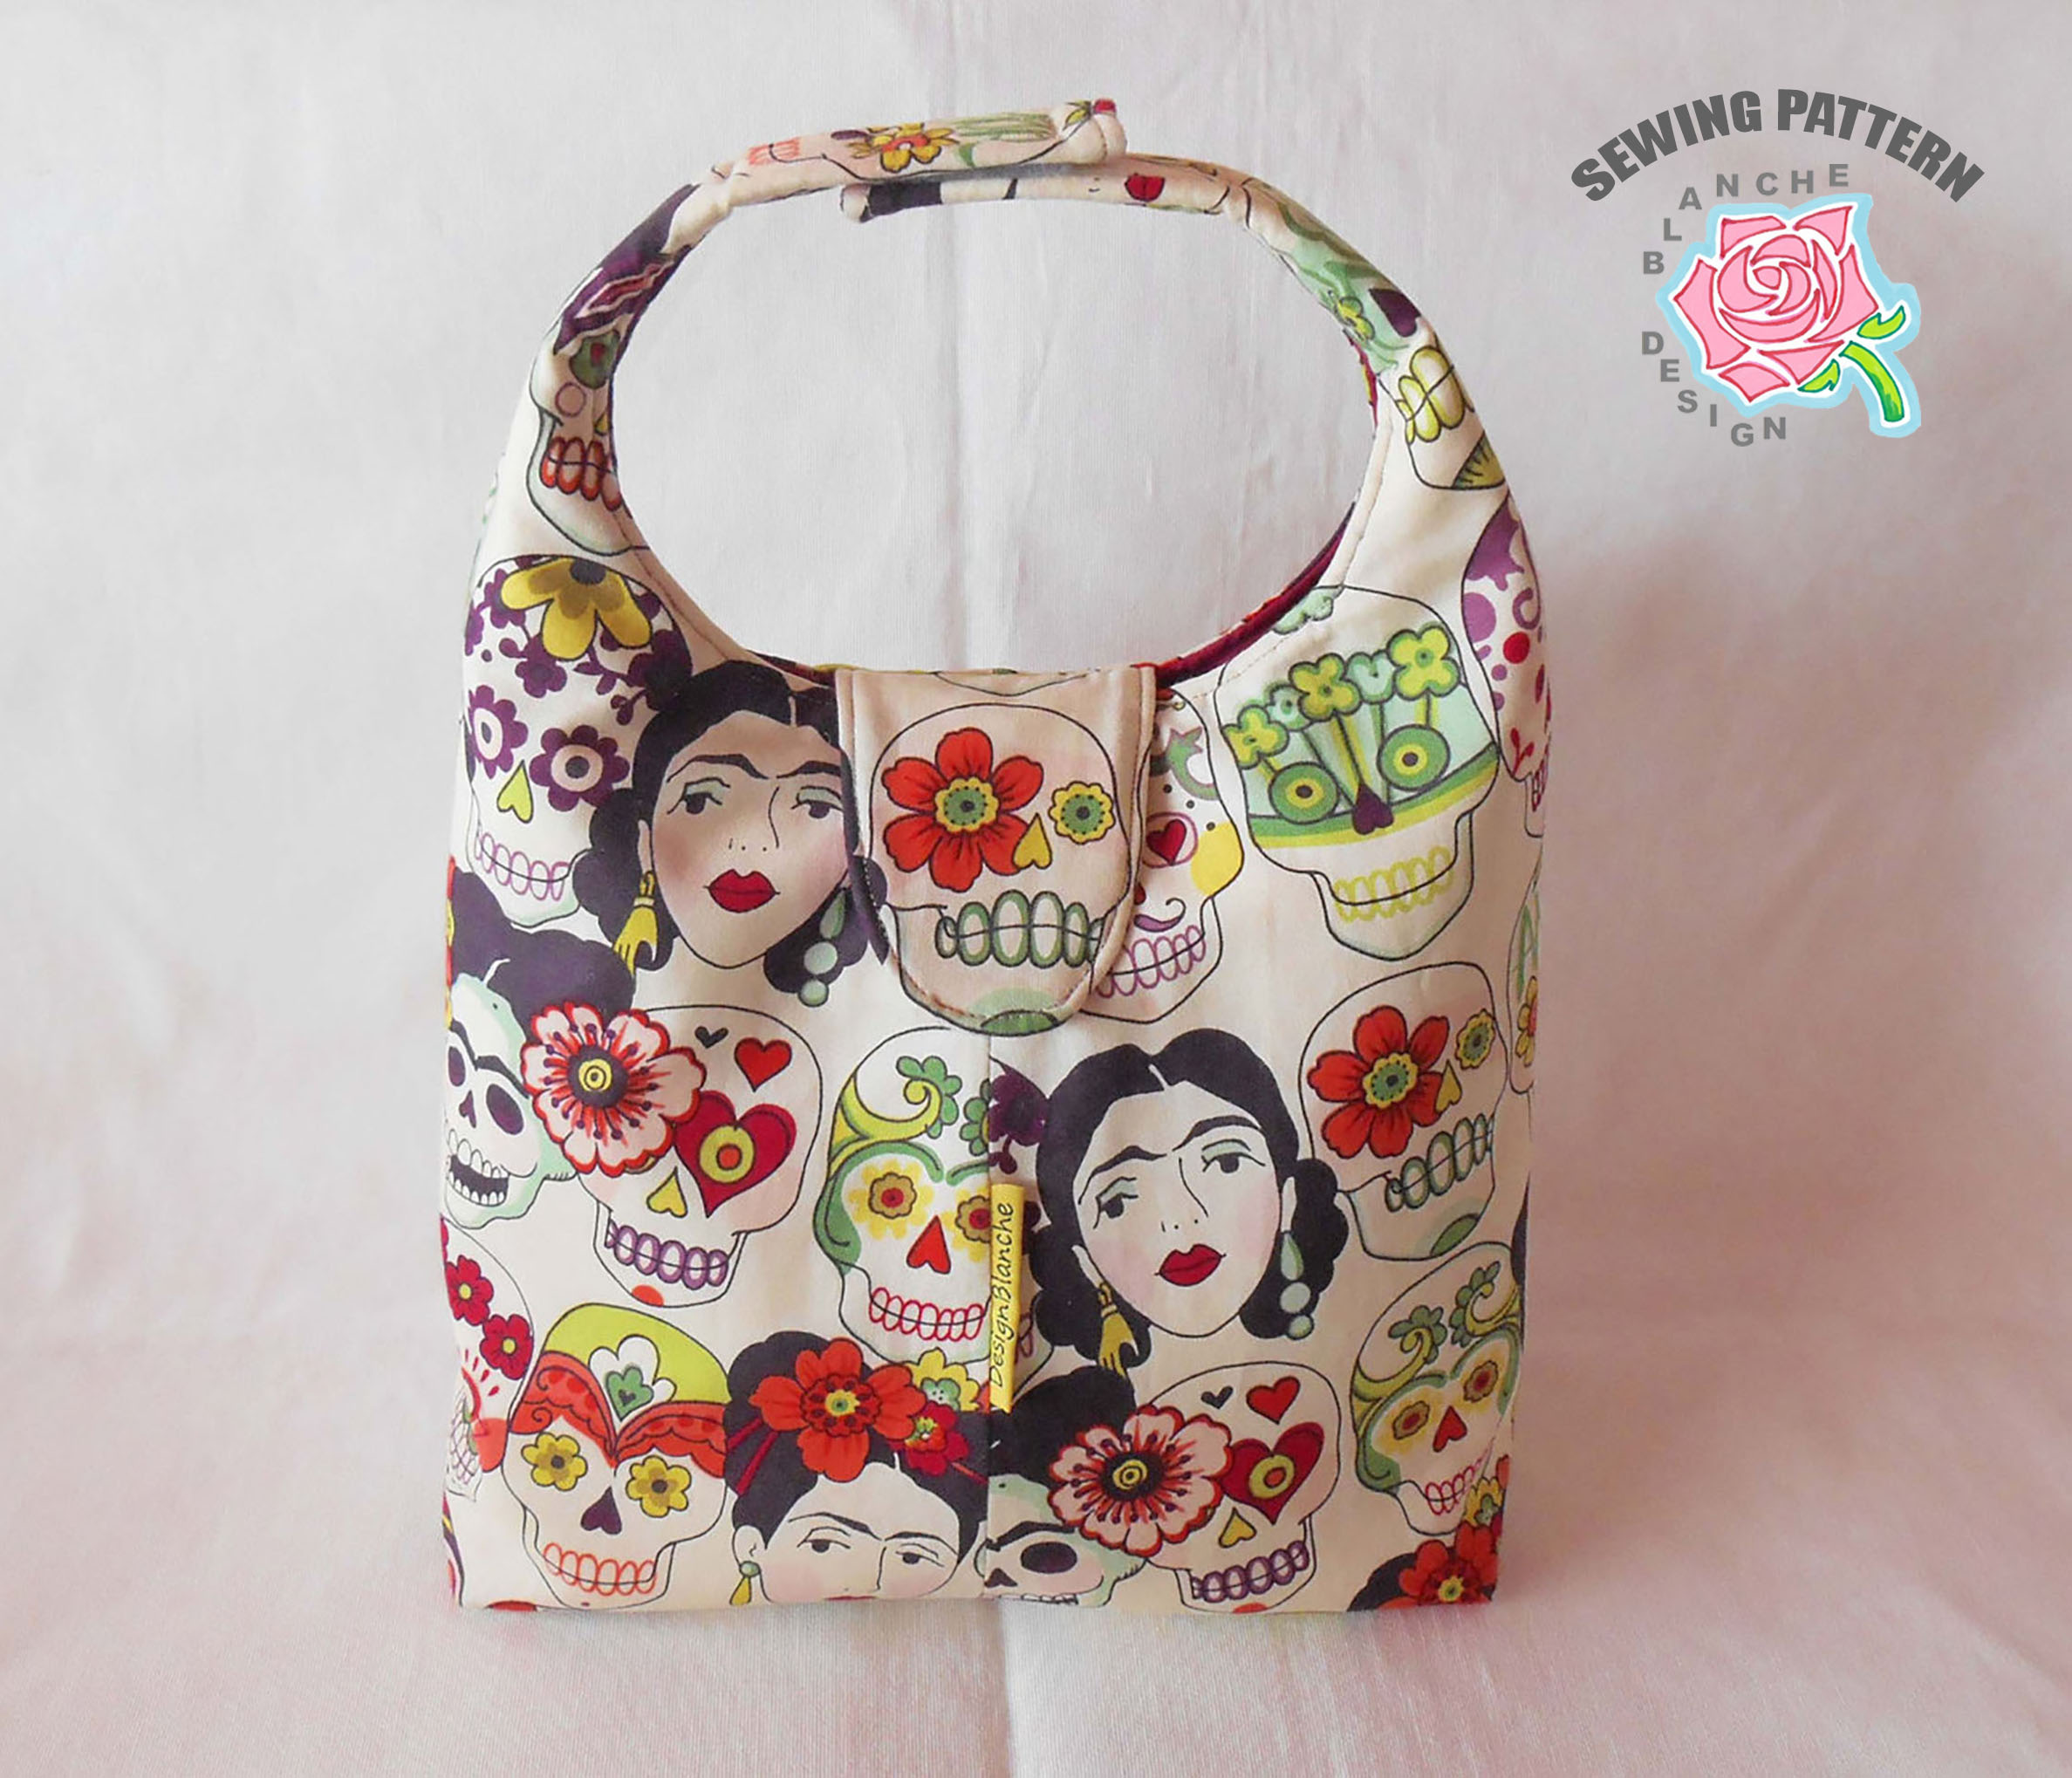 Velcro Insulated Lunch Bag Pattern in Two Sizes